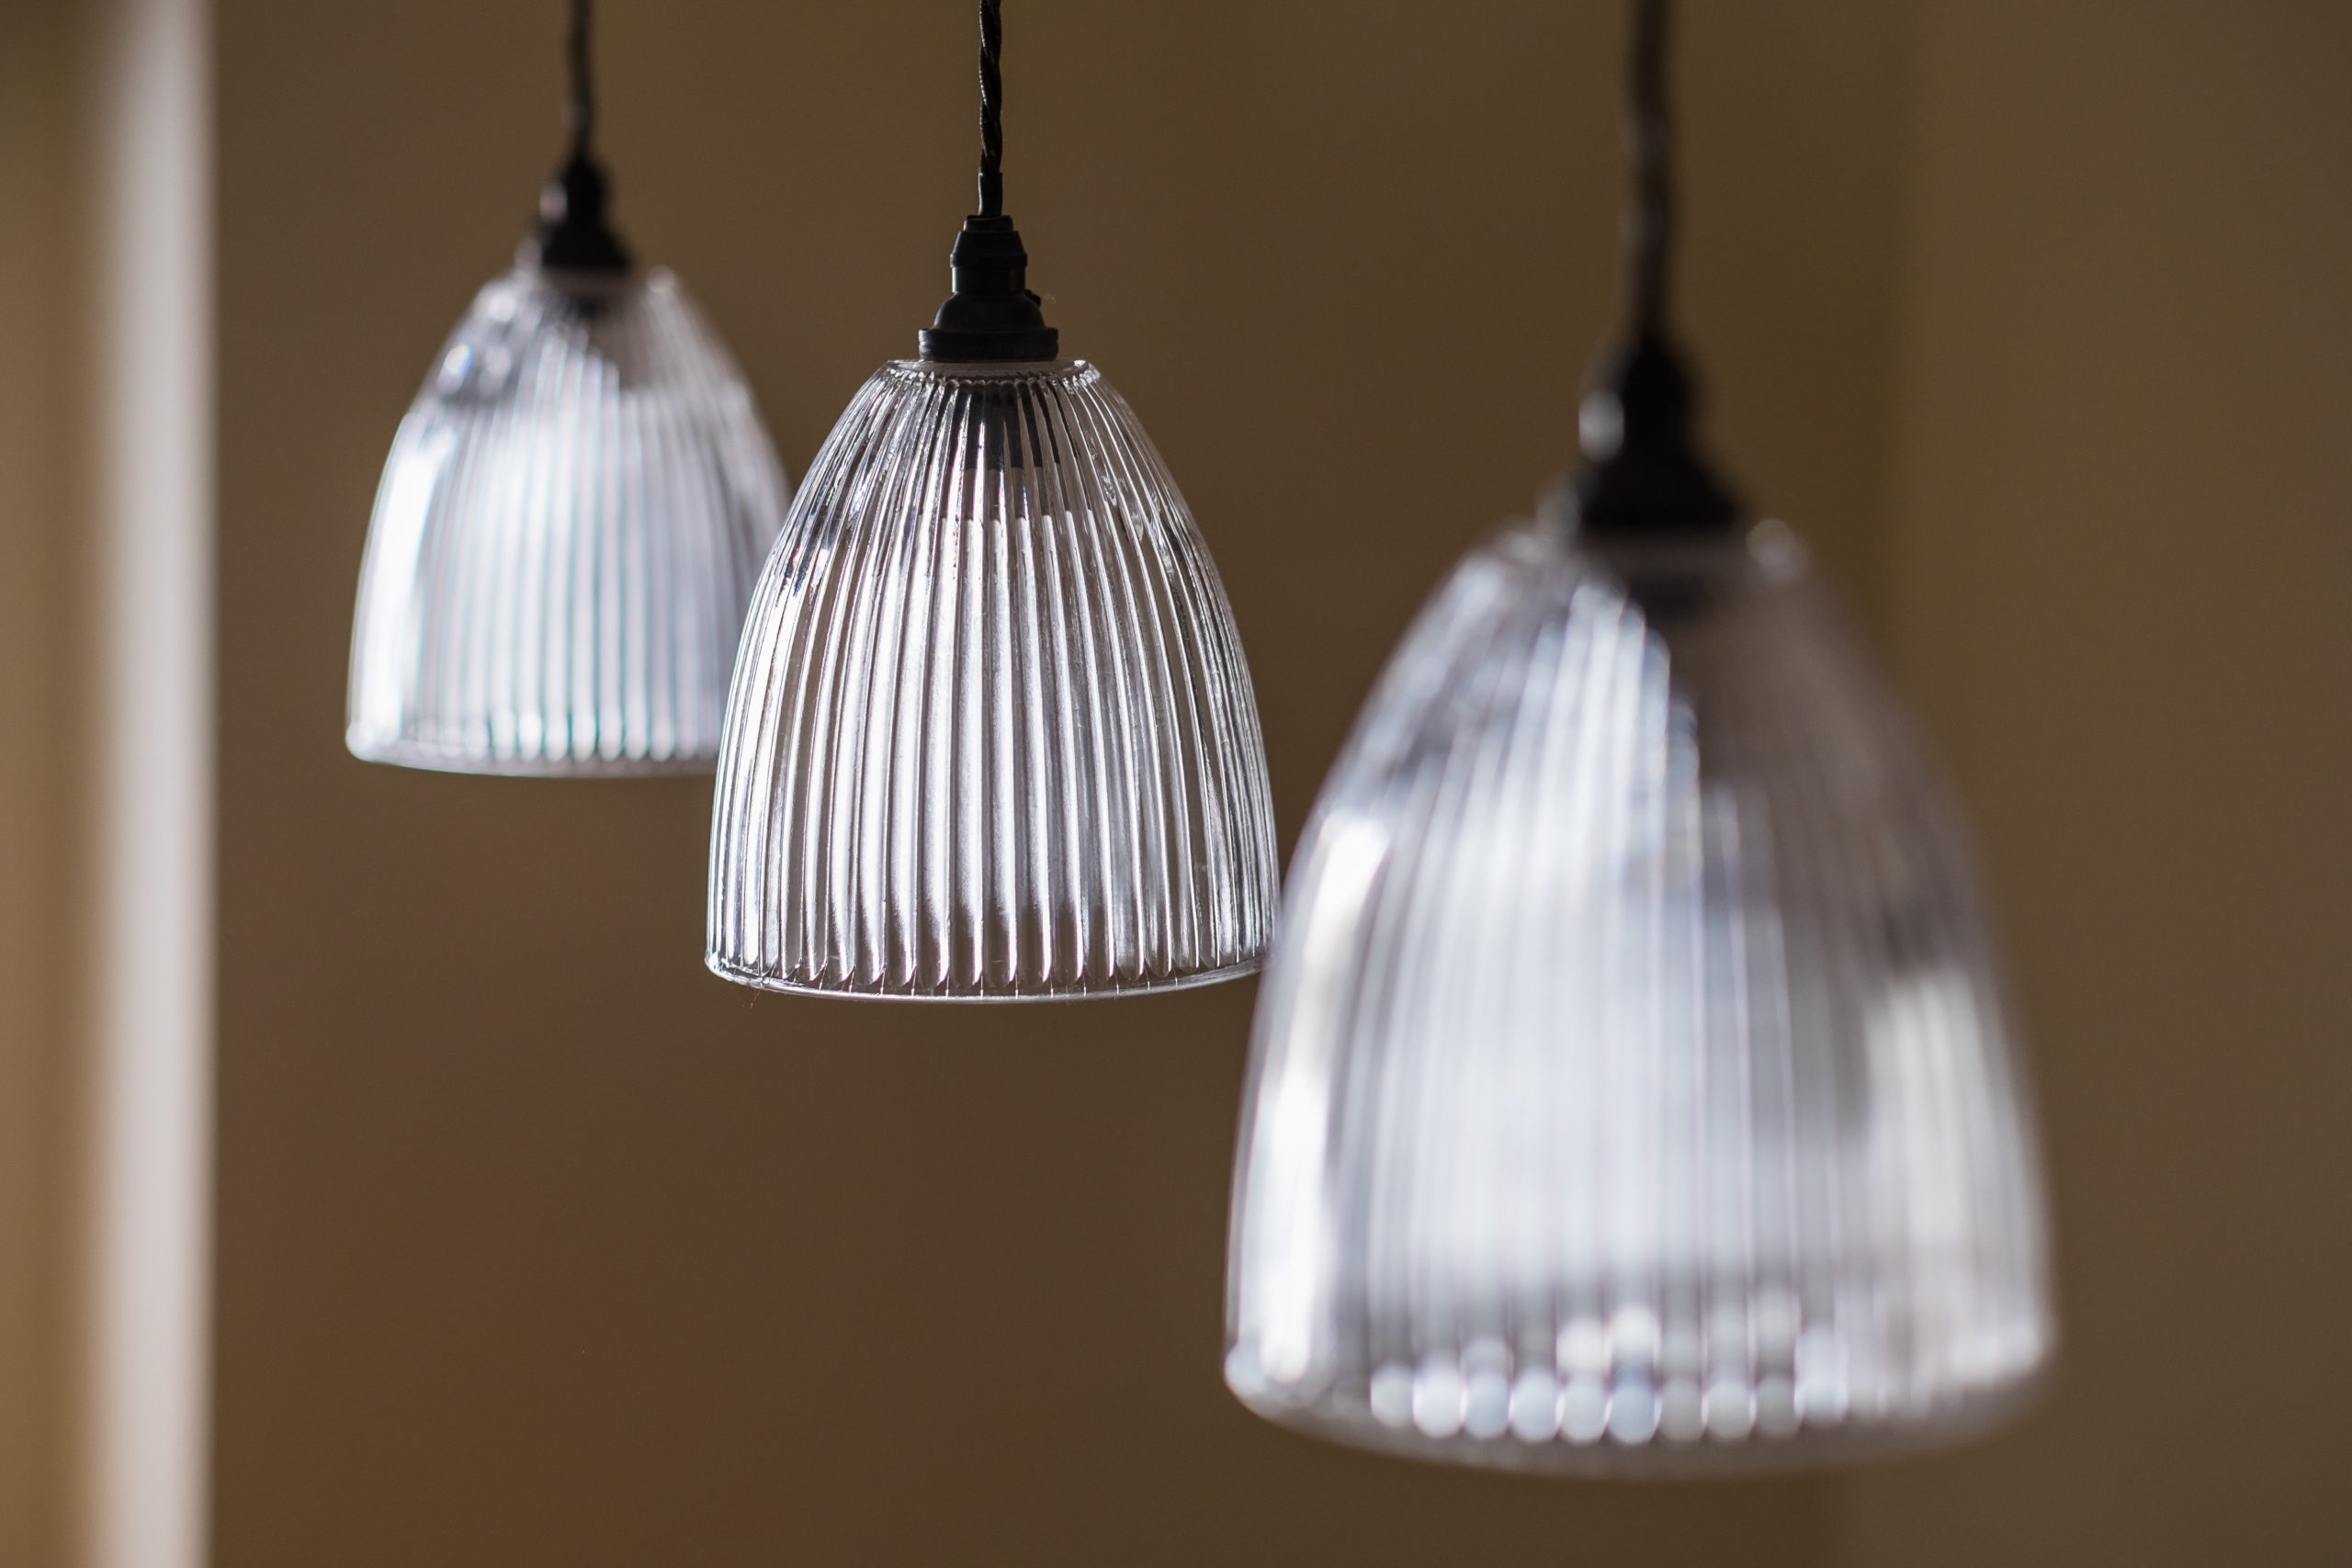 Vintage ribbed glass pendant lights from Fritz Fryer